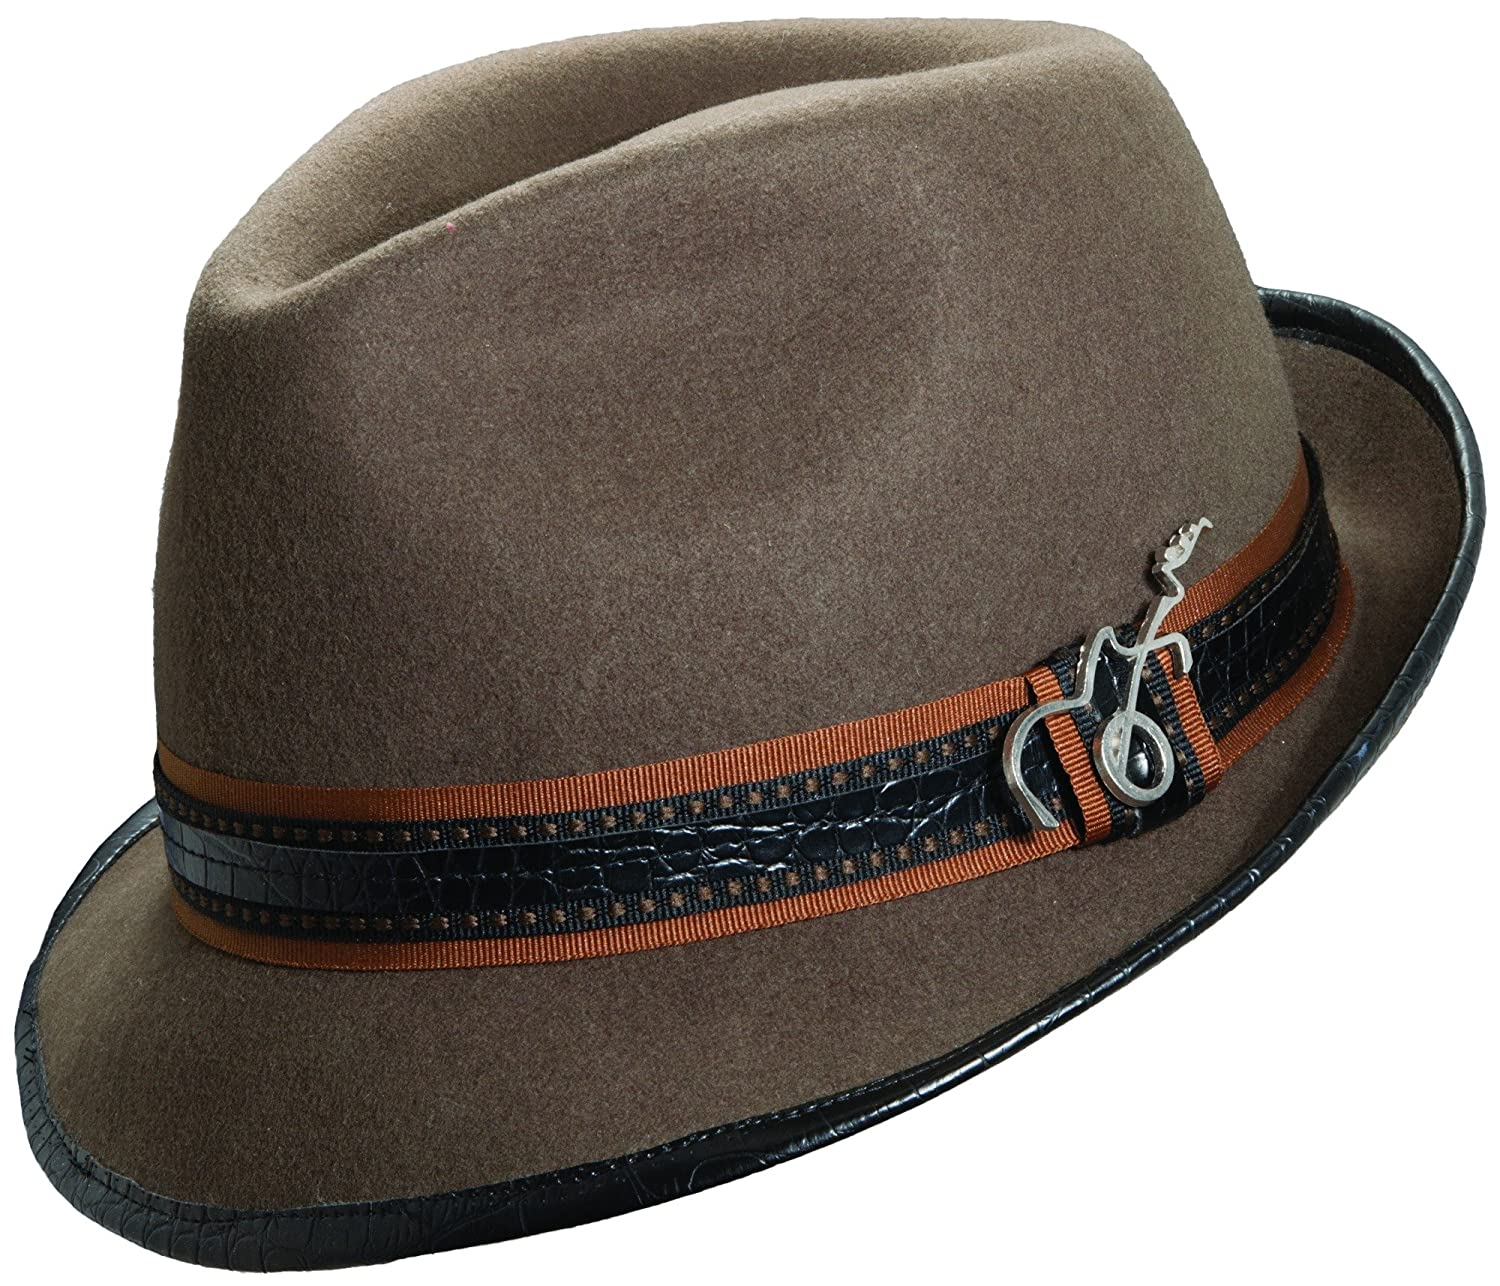 a4f5b42f6377e Carlos Santana Wool Felt Fedora with Guitar Pin - Meditation (SAN216) at  Amazon Men s Clothing store